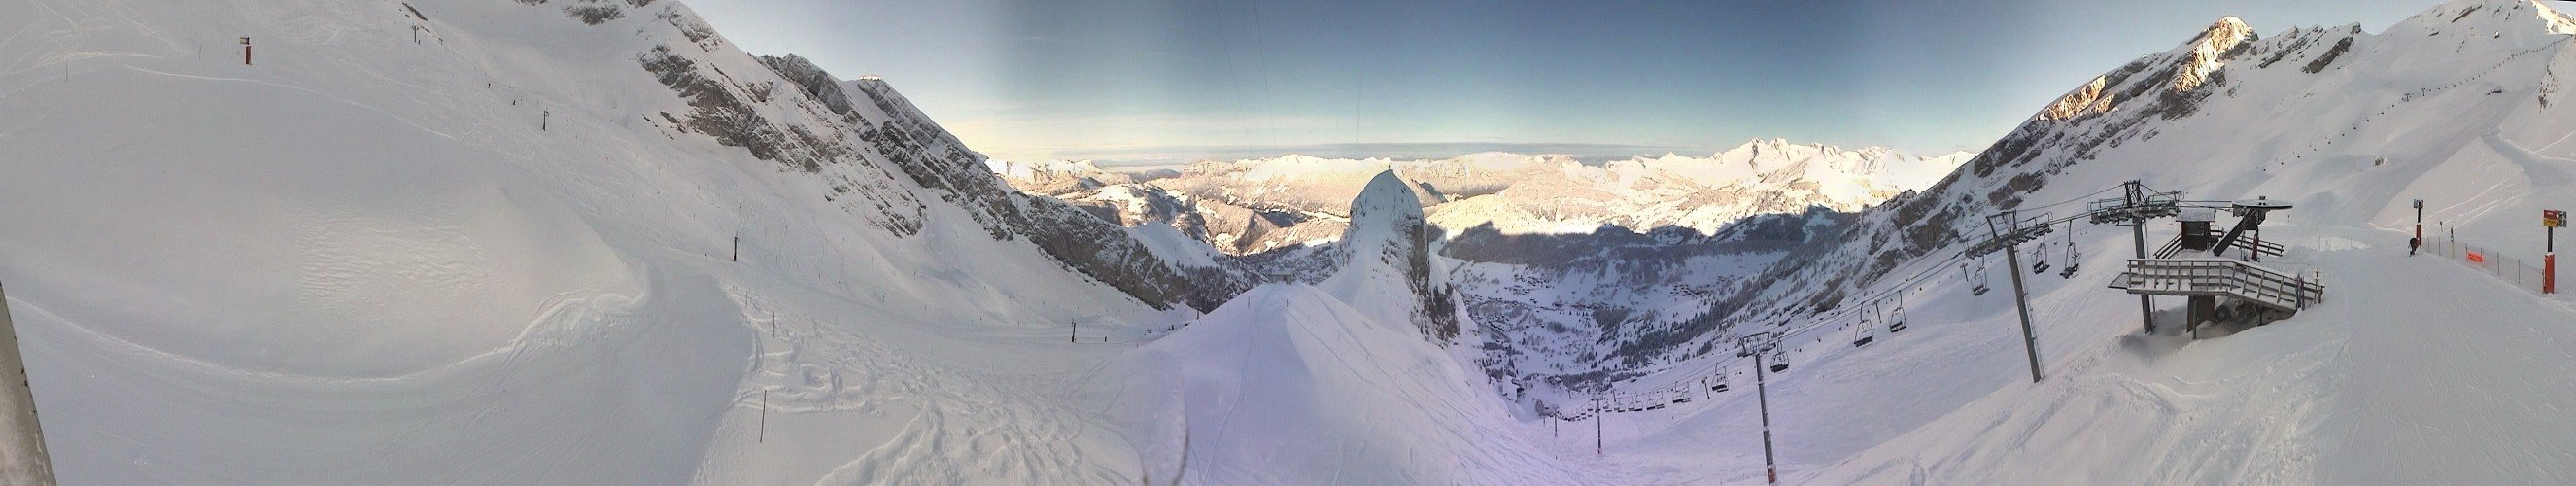 La Clusaz - ©webcams 4 janvier 2012 | flamelibra @ Skiinfo Lounge